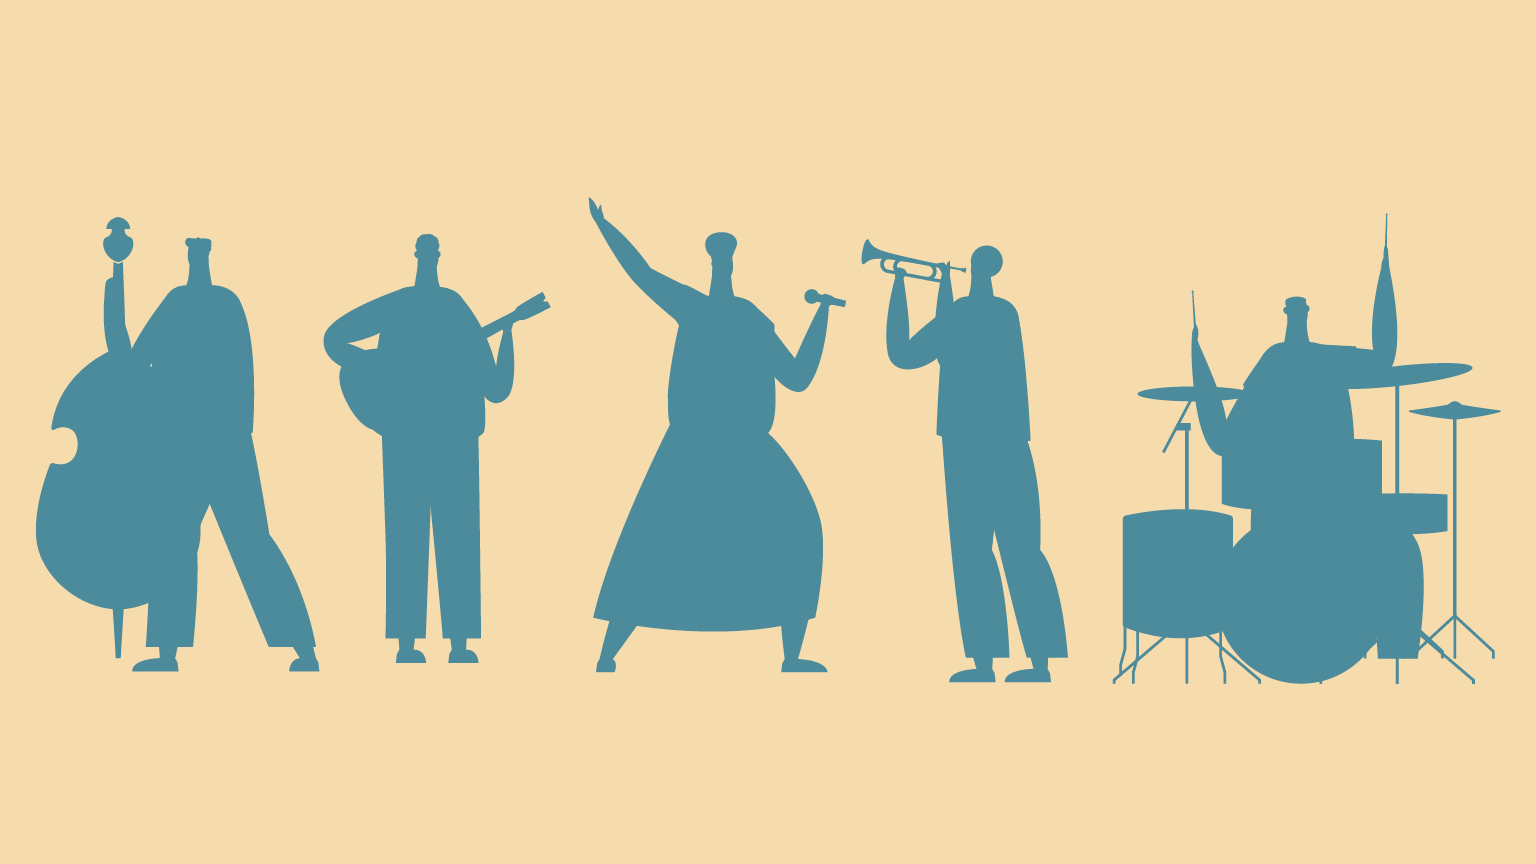 Illustration of silhouettes playing musical instruments.